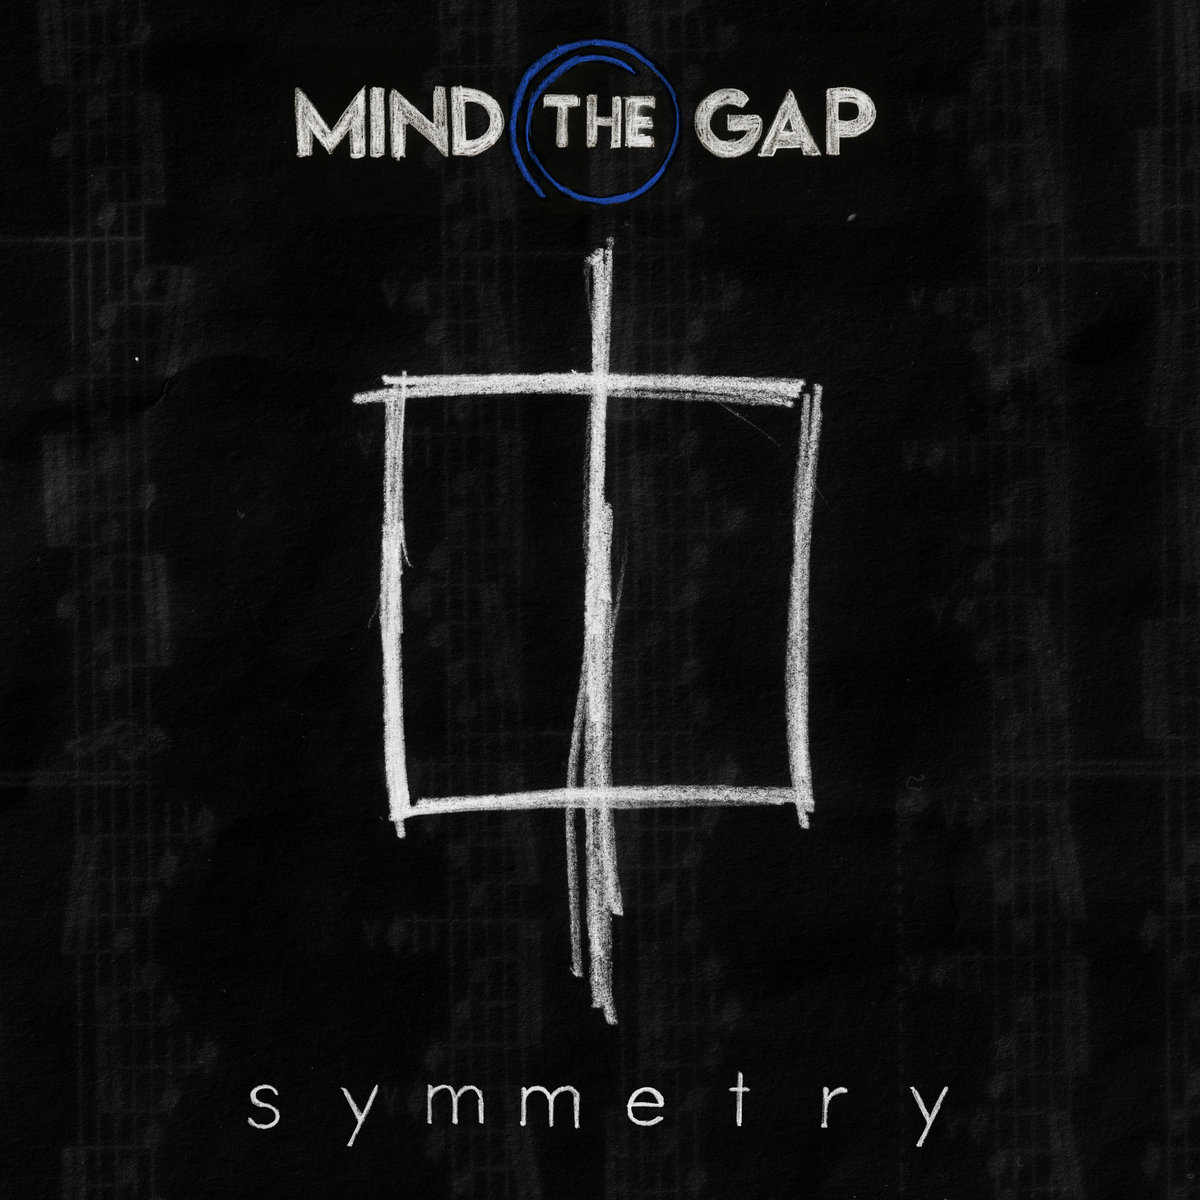 Simmetry mind the gap live music pop rock young generation london underground album cd new music